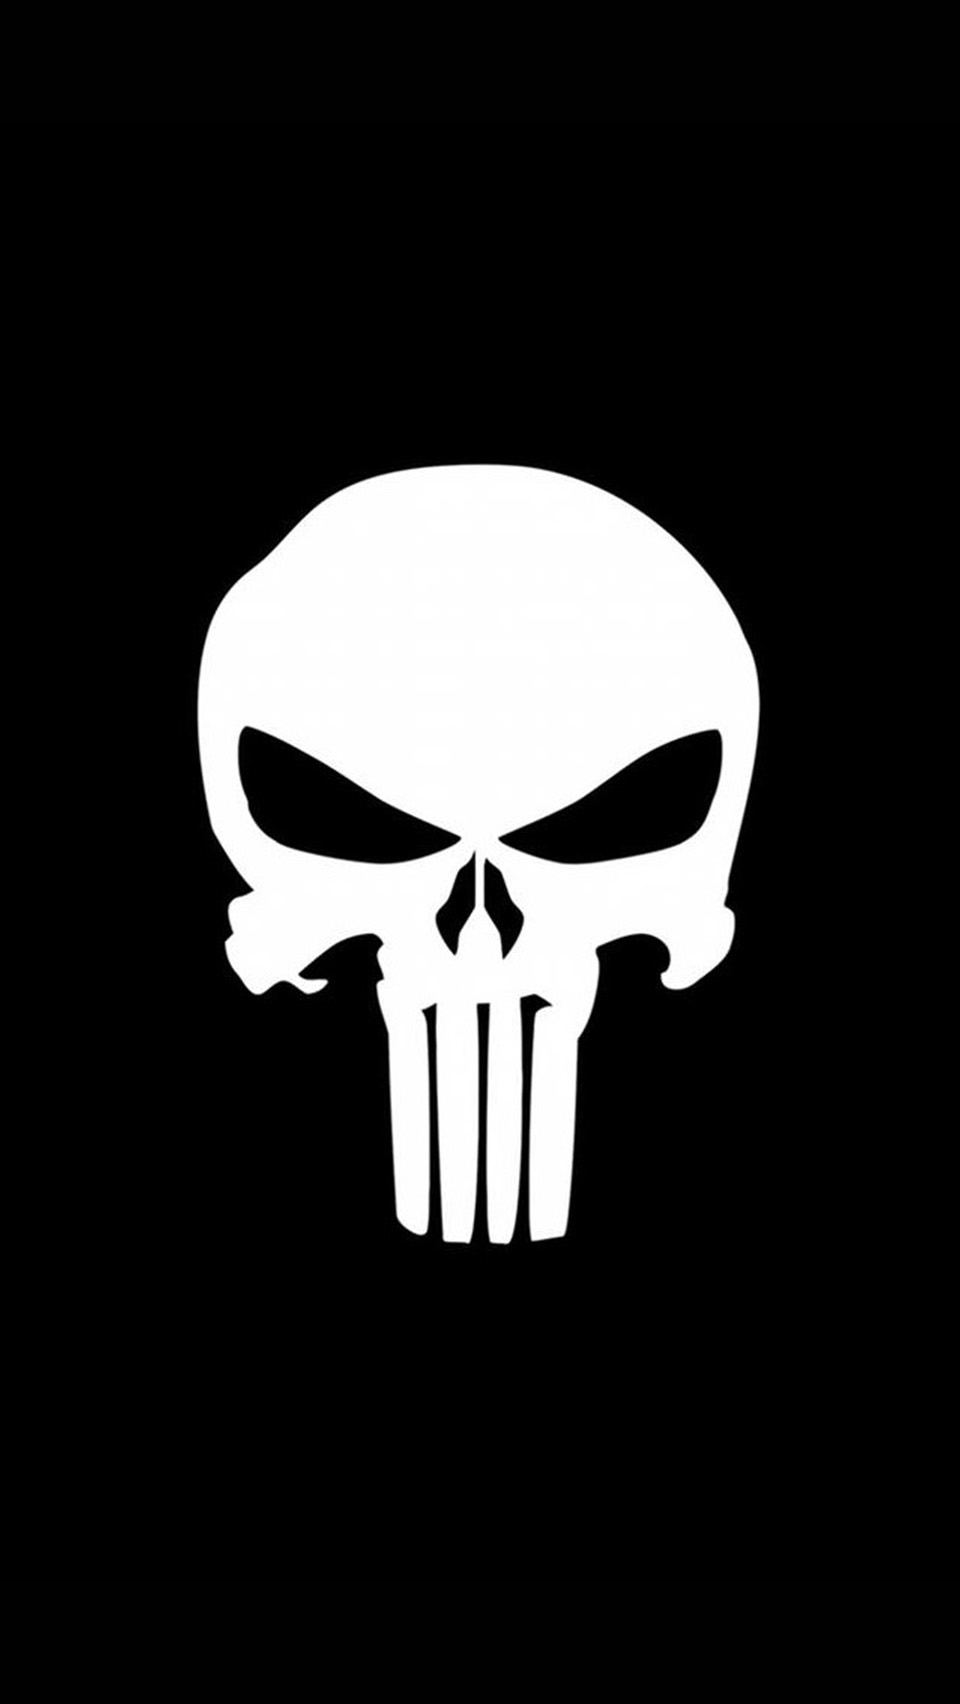 Skull Iphone 6 Wallpaper Punisher Logo photos of Iphone Wallpaper Size 960x1704